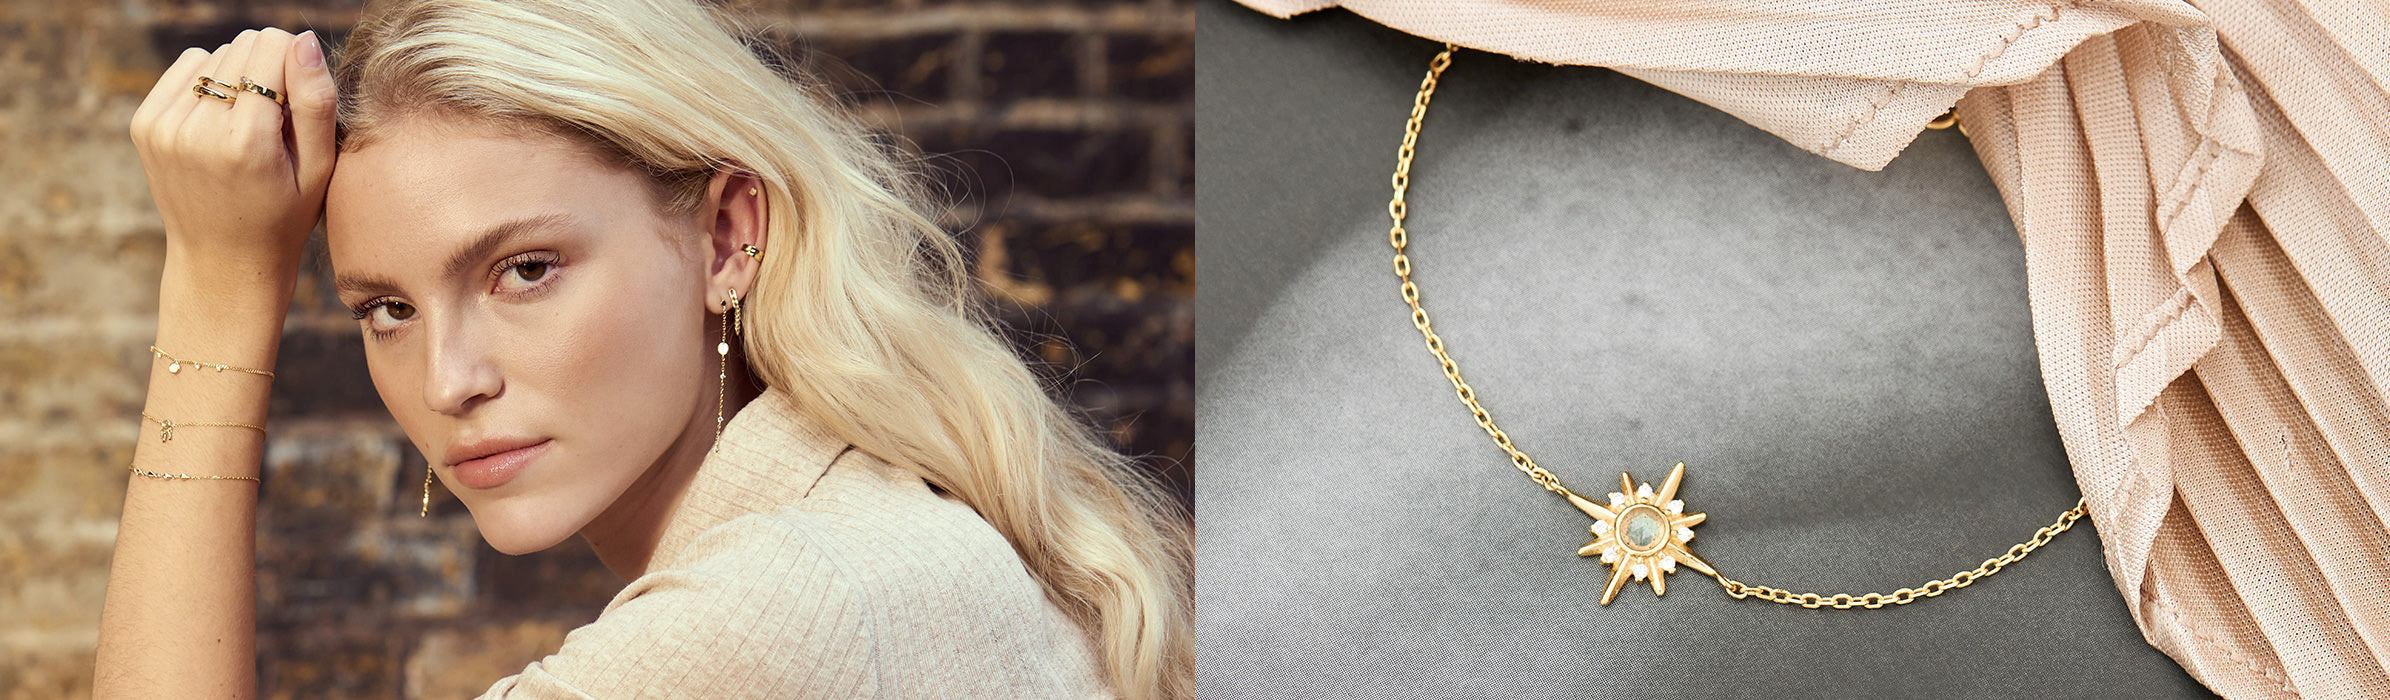 Midnight Fever Jewellery Collection by Ania Haie